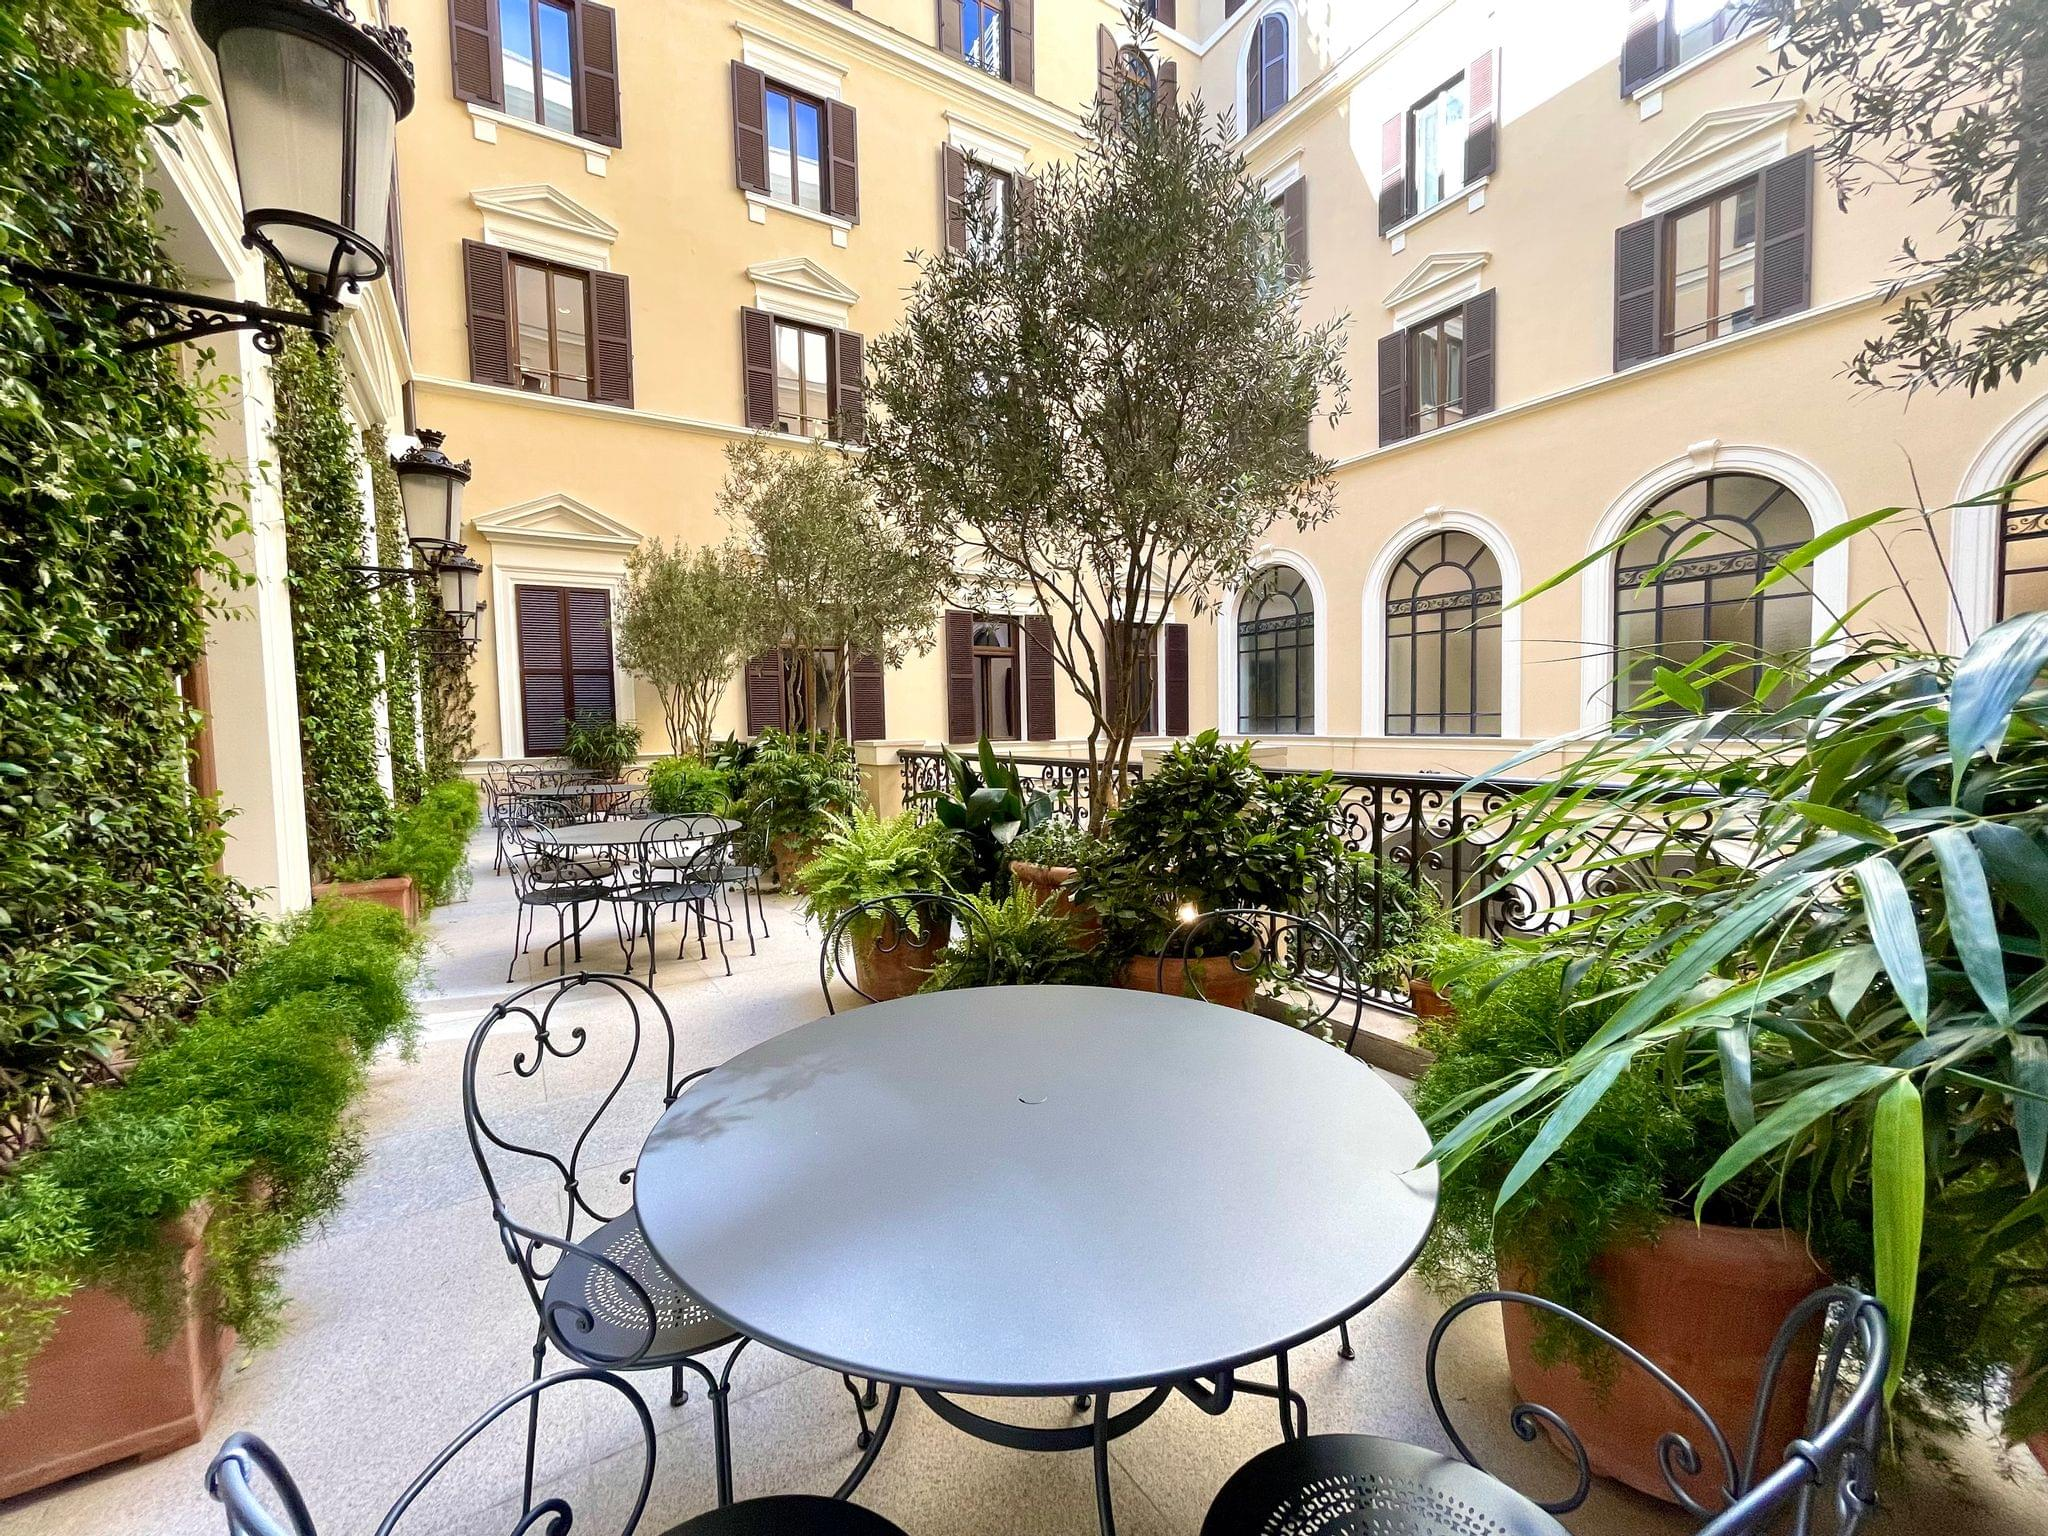 The terrace overlooks the courtyard and features jasmine vines and olive trees inspired by Roman roof terraces.